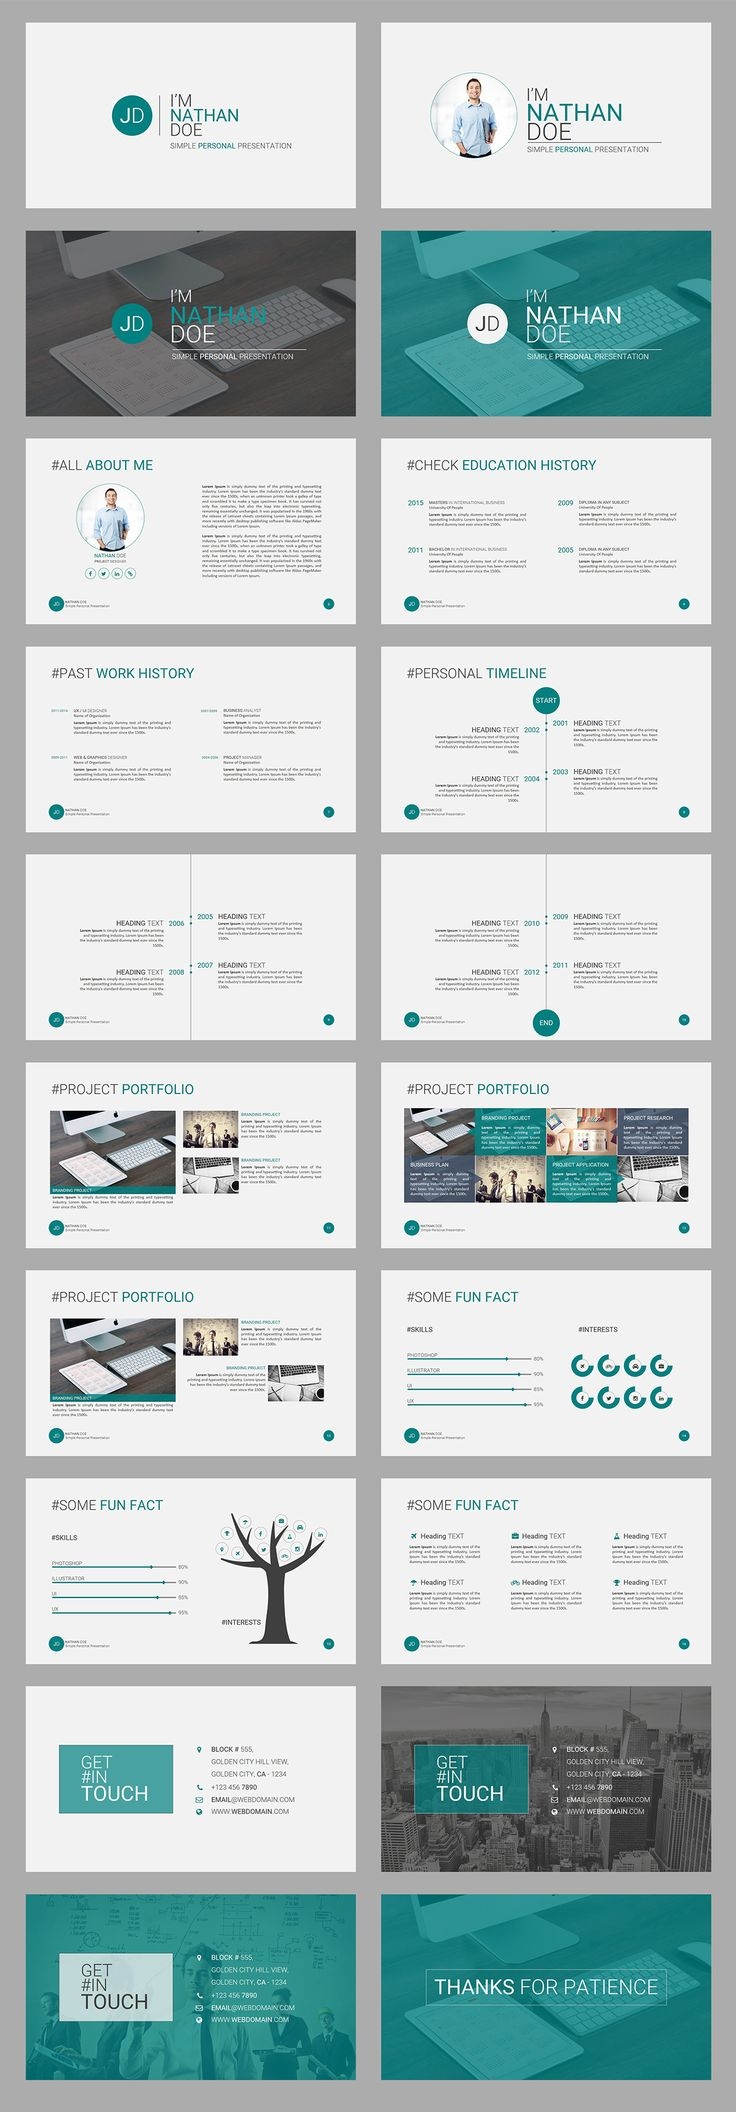 ideas about powerpoint presentations jd personal powerpoint presentation template on behance